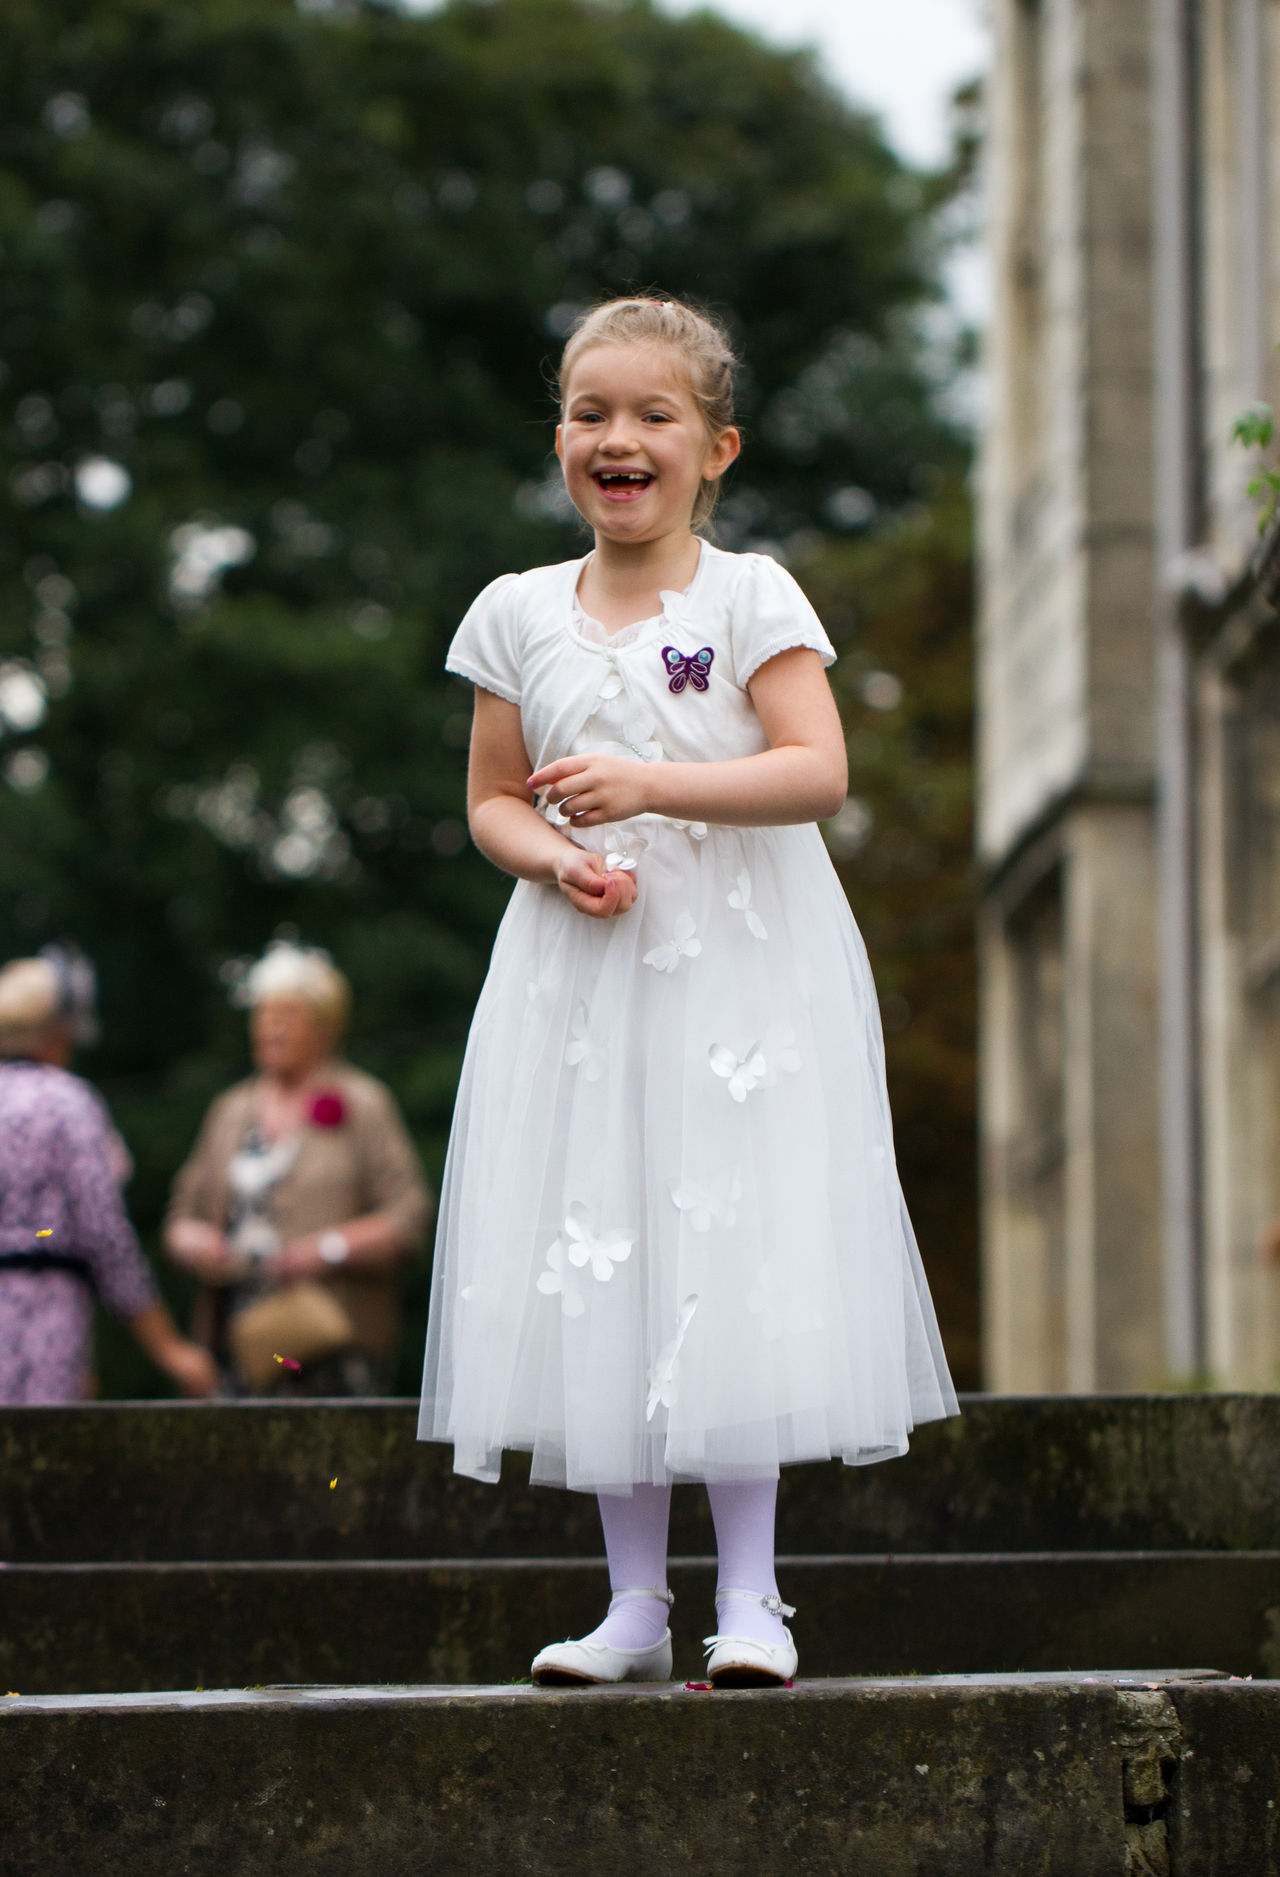 A young girl in a bridesmaid dress laughing and smiling at a wedding venue. Bridesmaid Bridesmaid Dress Bridesmaids Childhood Children Children Photography Children Playing Children's Portraits Flower Girl Full Length Girl Happy Happy :) Happy People Happy Time Laughing Laughing Out Loud One Person Outdoors Portrait Smiling Wedding Wedding Day Wedding Photography Weddings Around The World